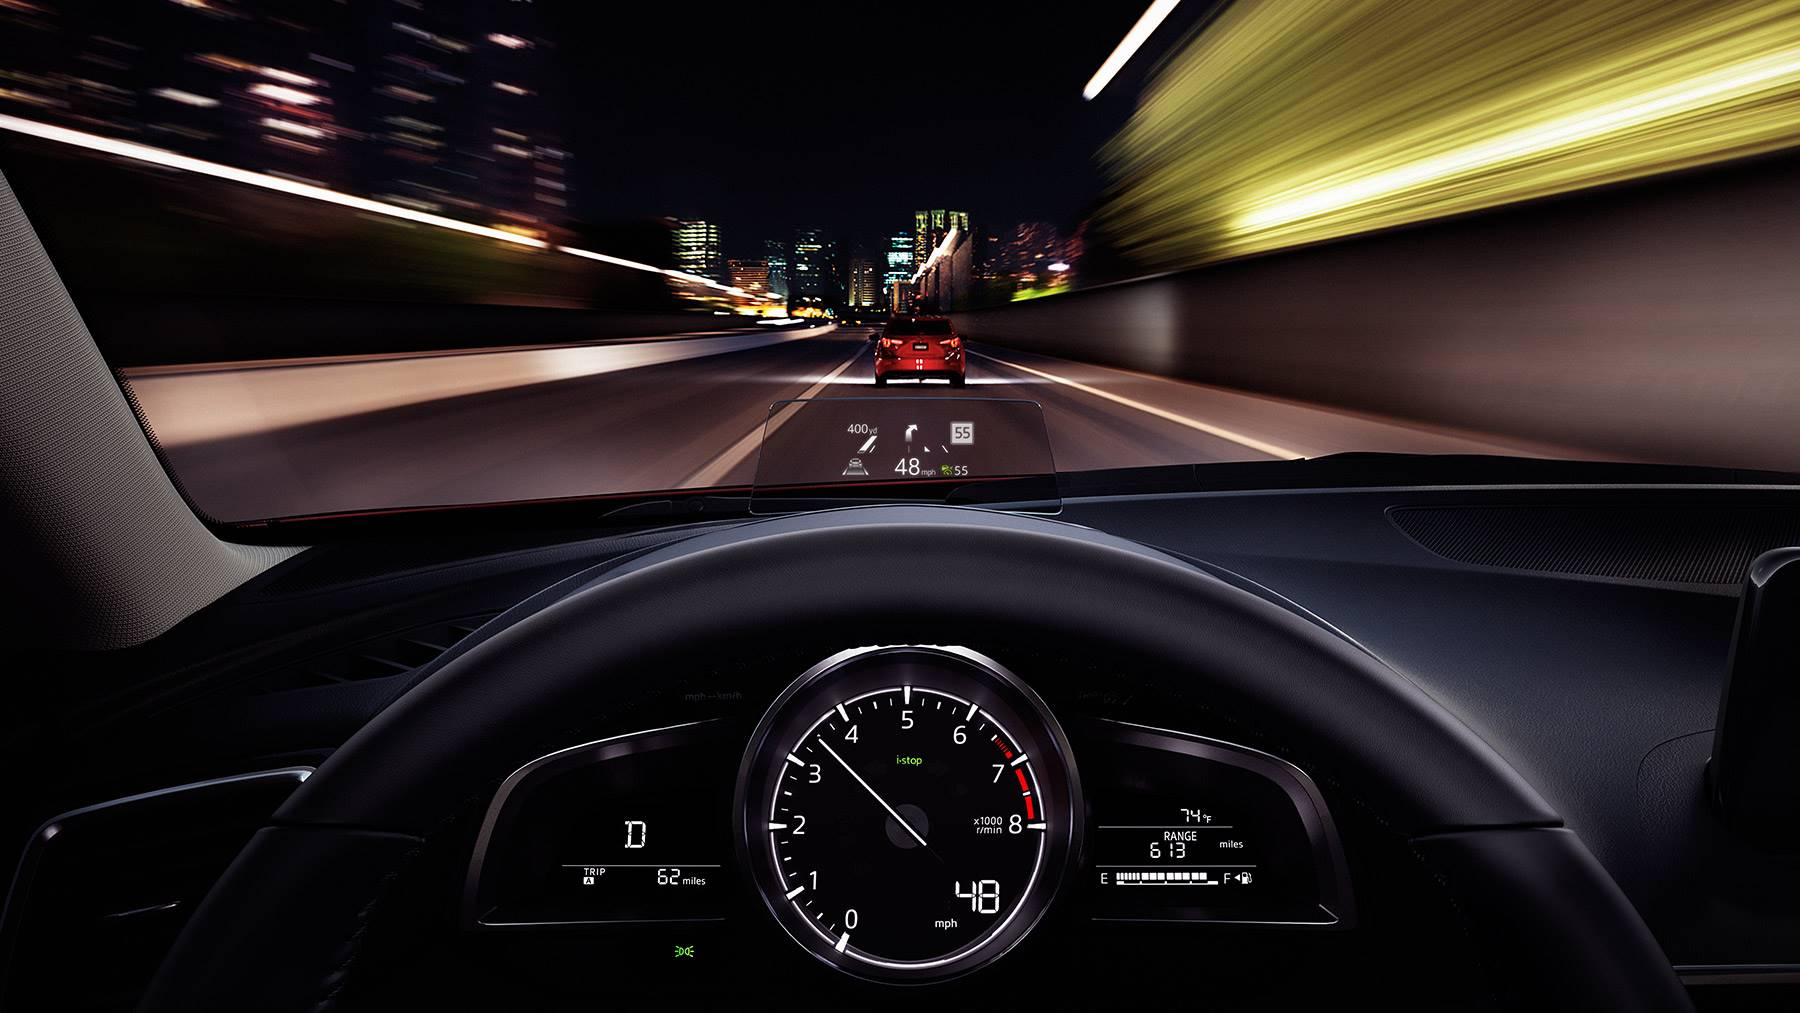 Enjoy the Journey in the Mazda3!